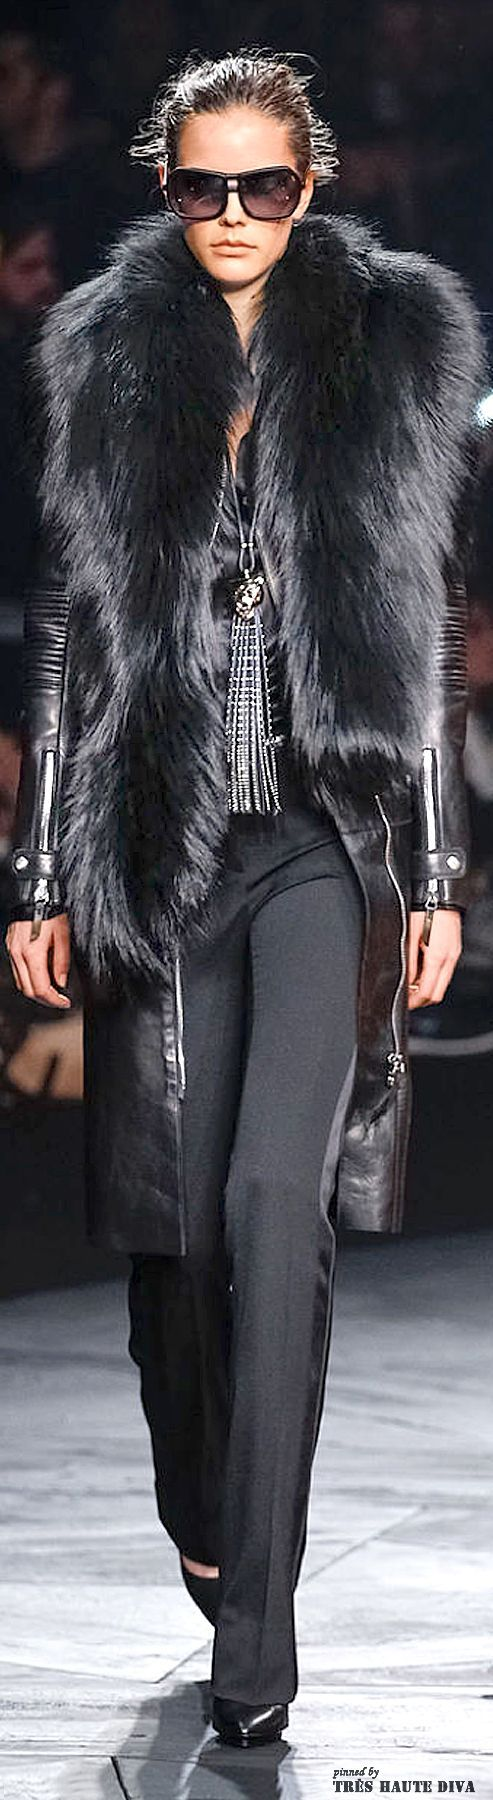 FIERCE Lifestyle of a Bachelorette - Roberto Cavalli Fall/Winter 2014